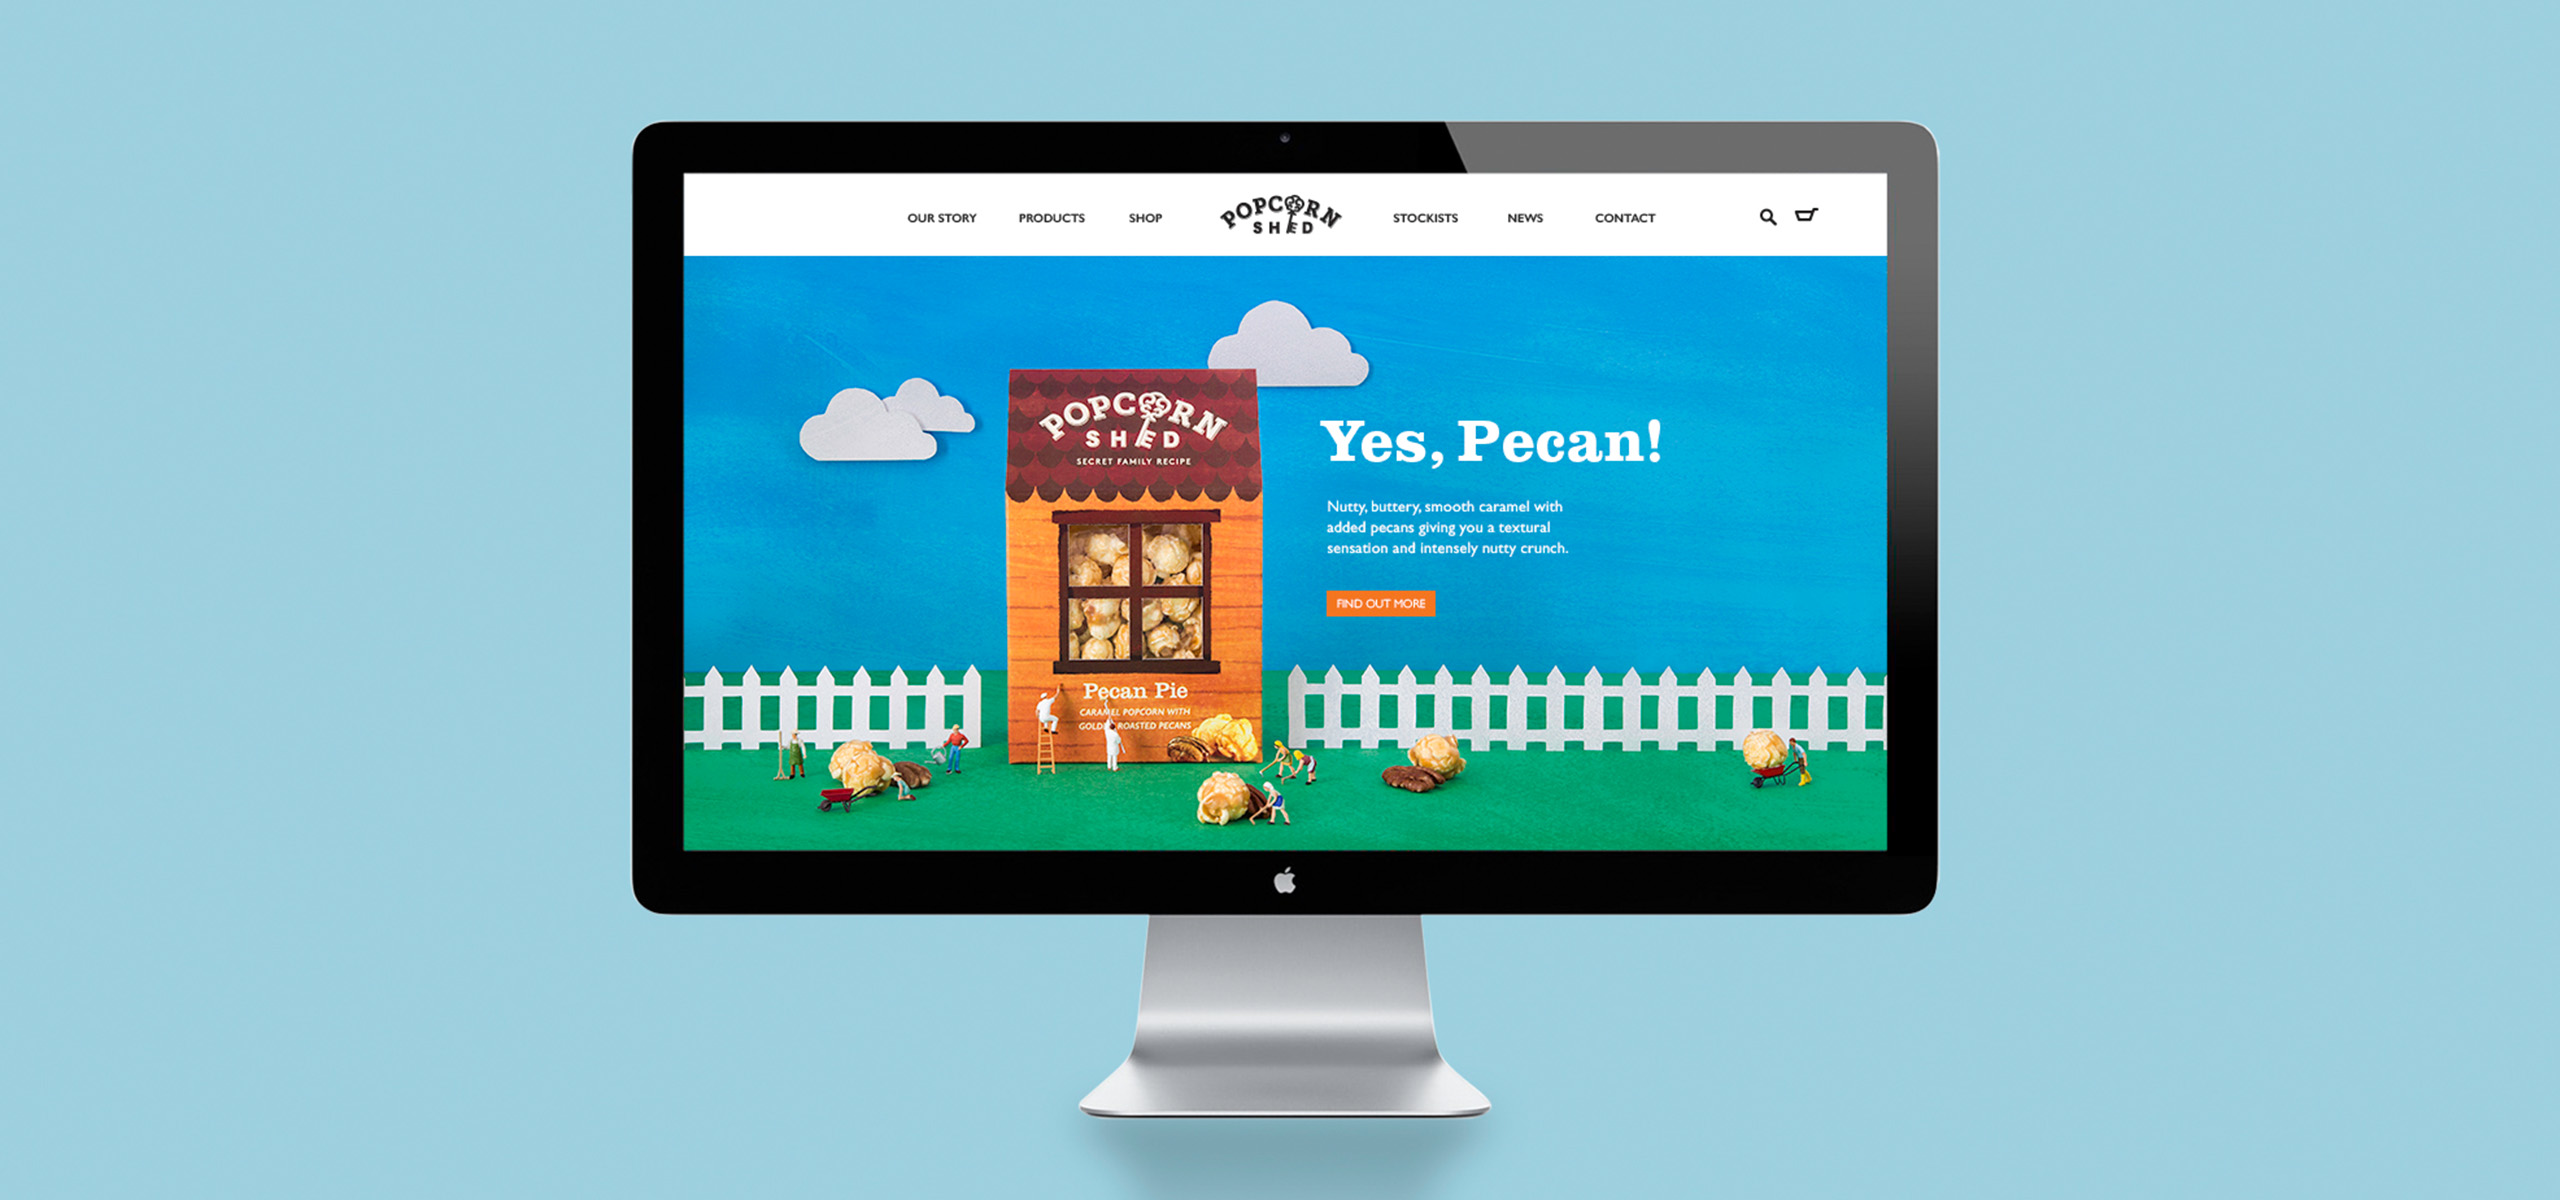 Website design for food startup brand Popcorn Shed, designed by White Bear Studio